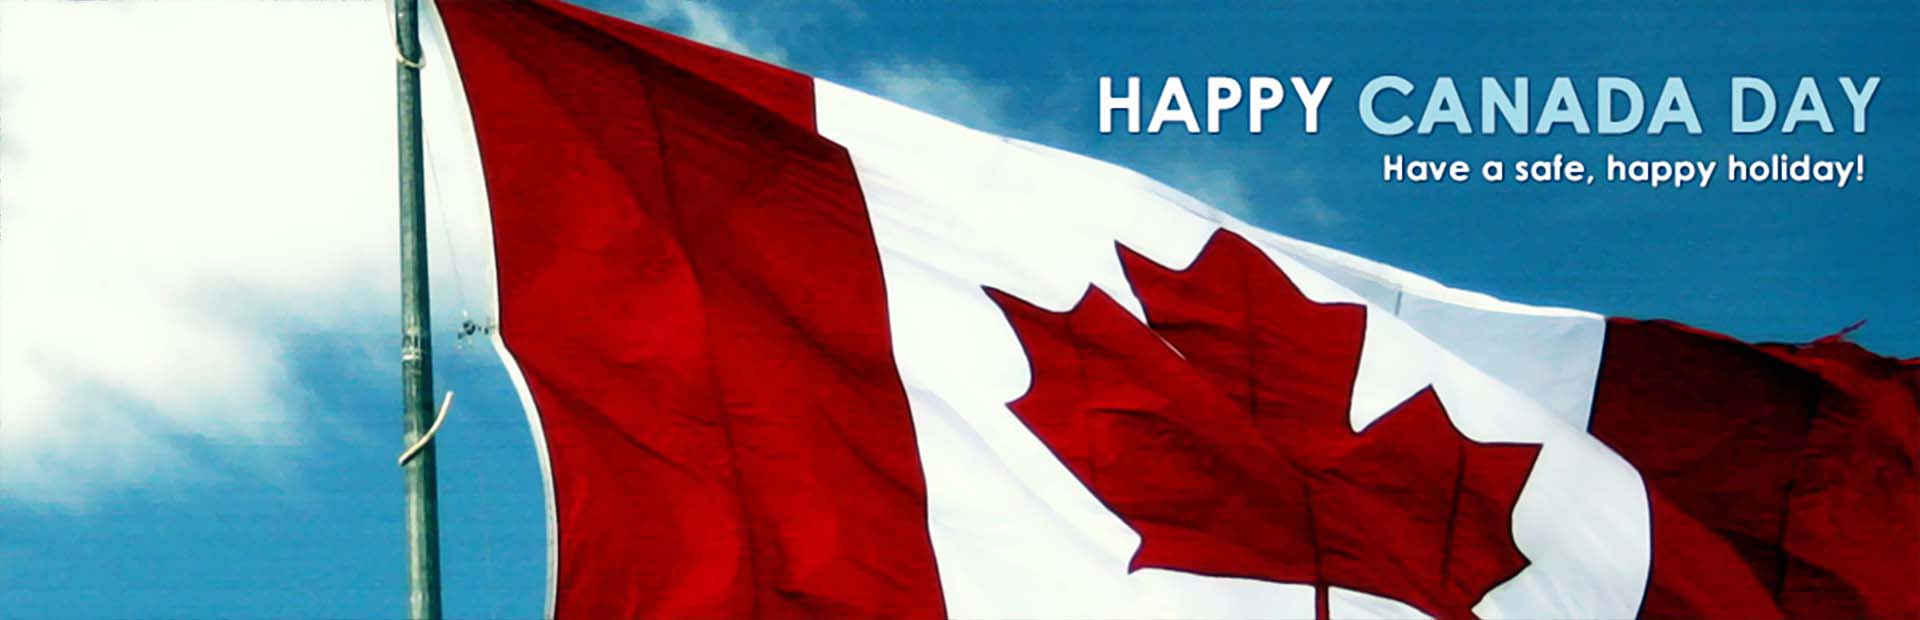 Happy Canada Day! Have a safe and happy holiday.